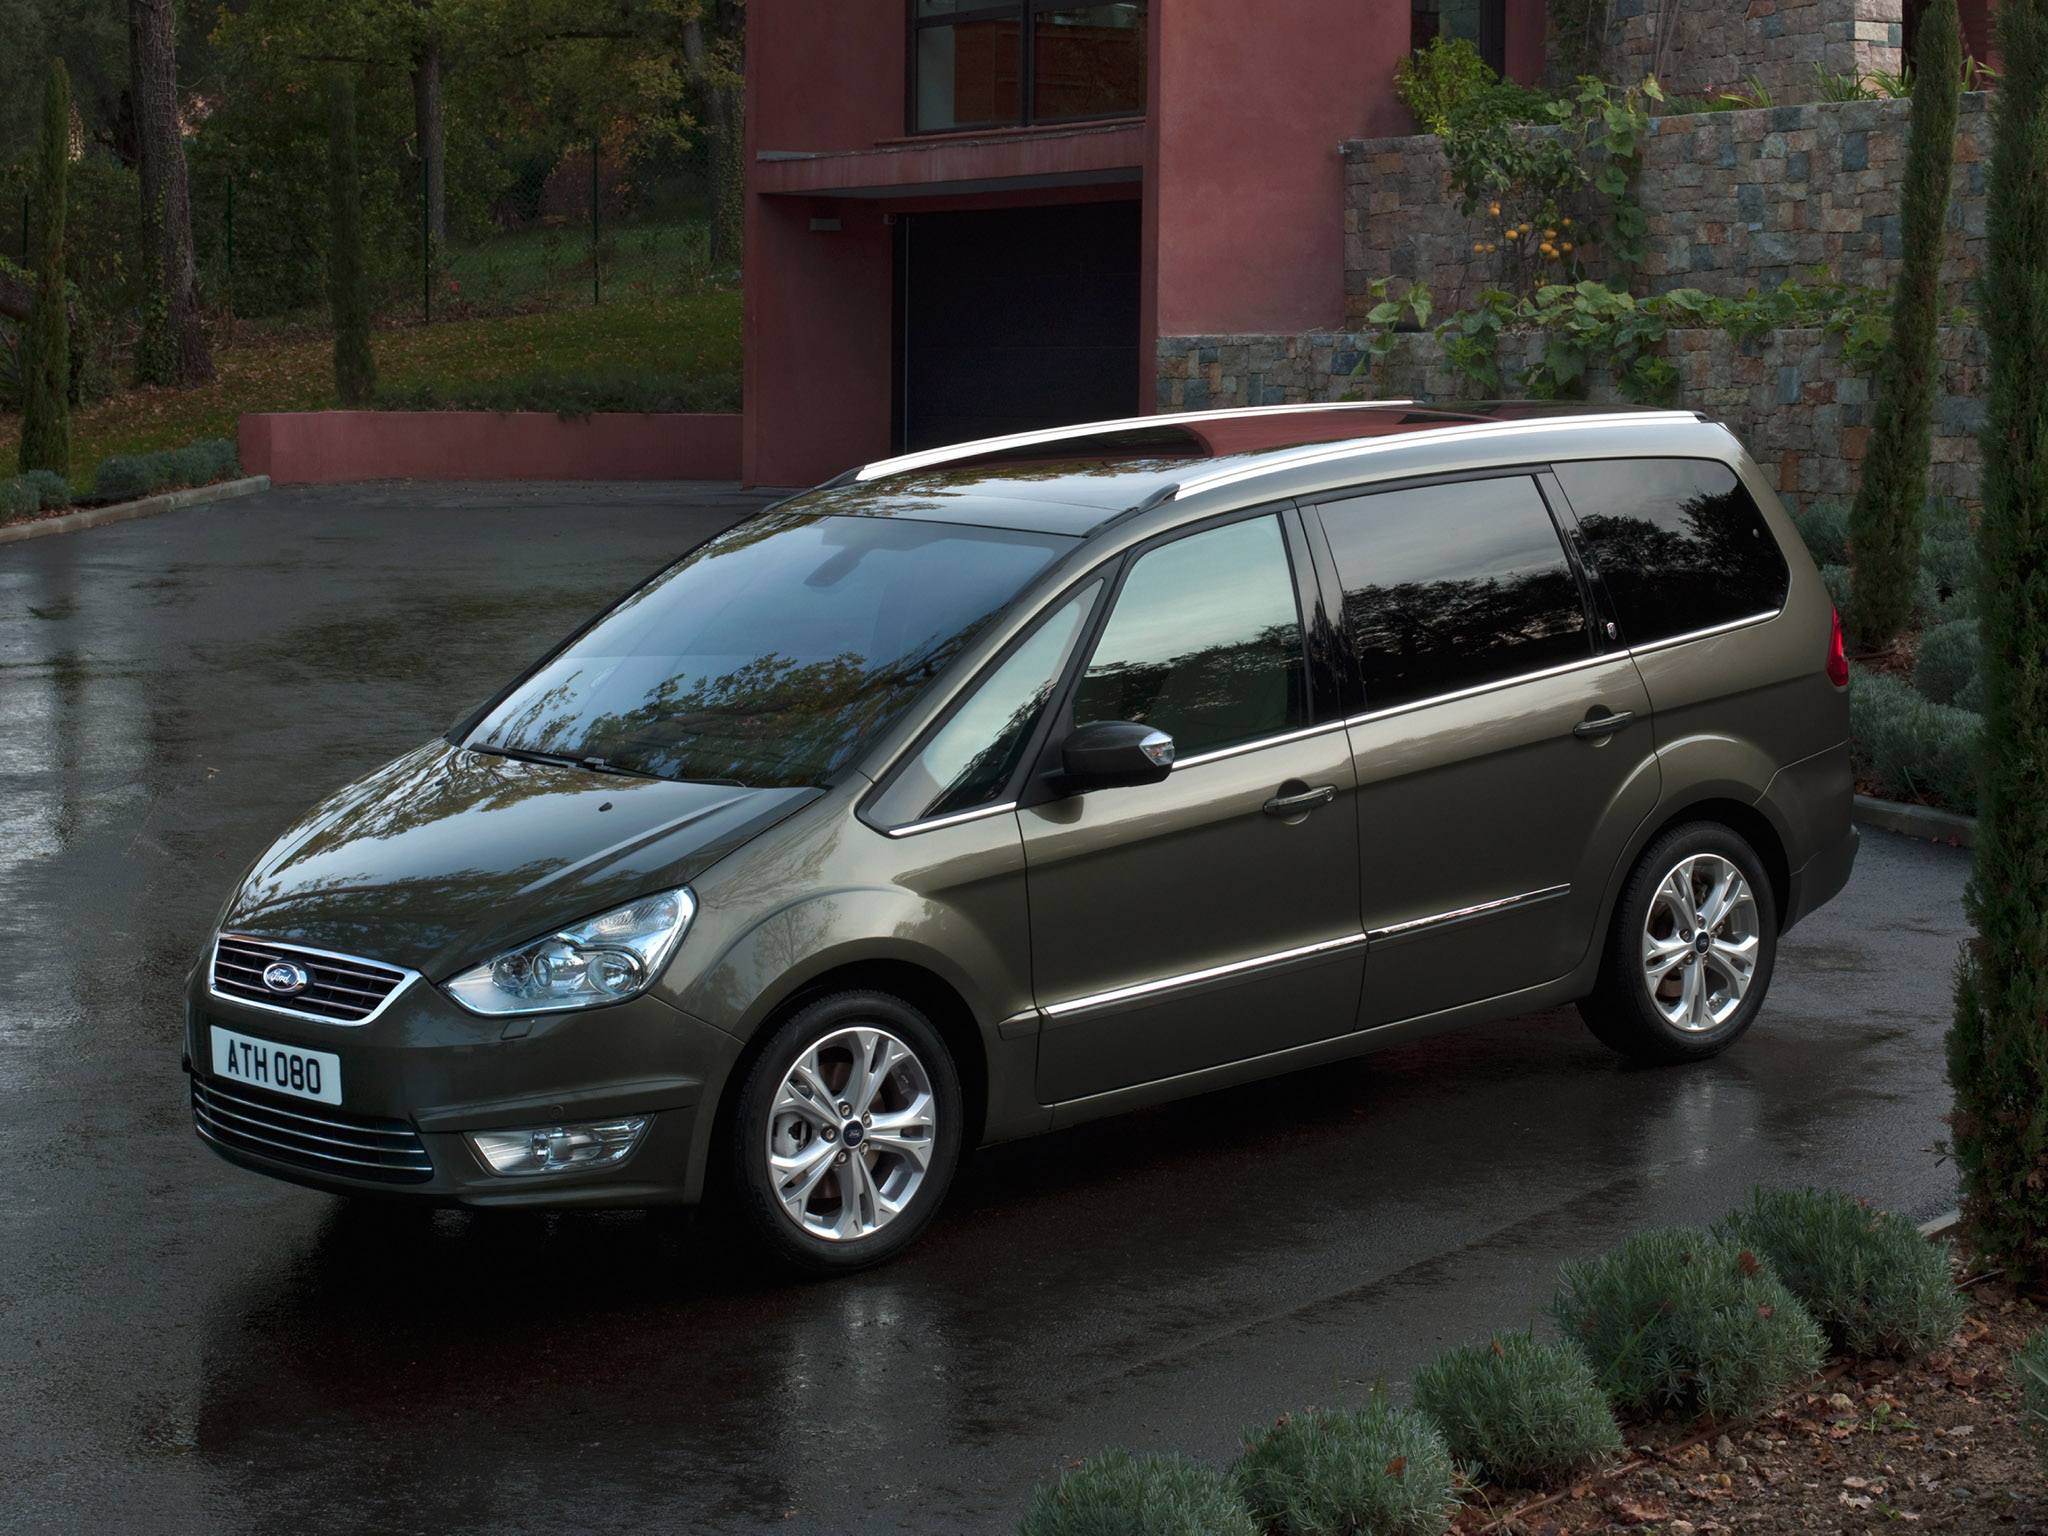 Ford Galaxy 1.8 2009 photo - 8